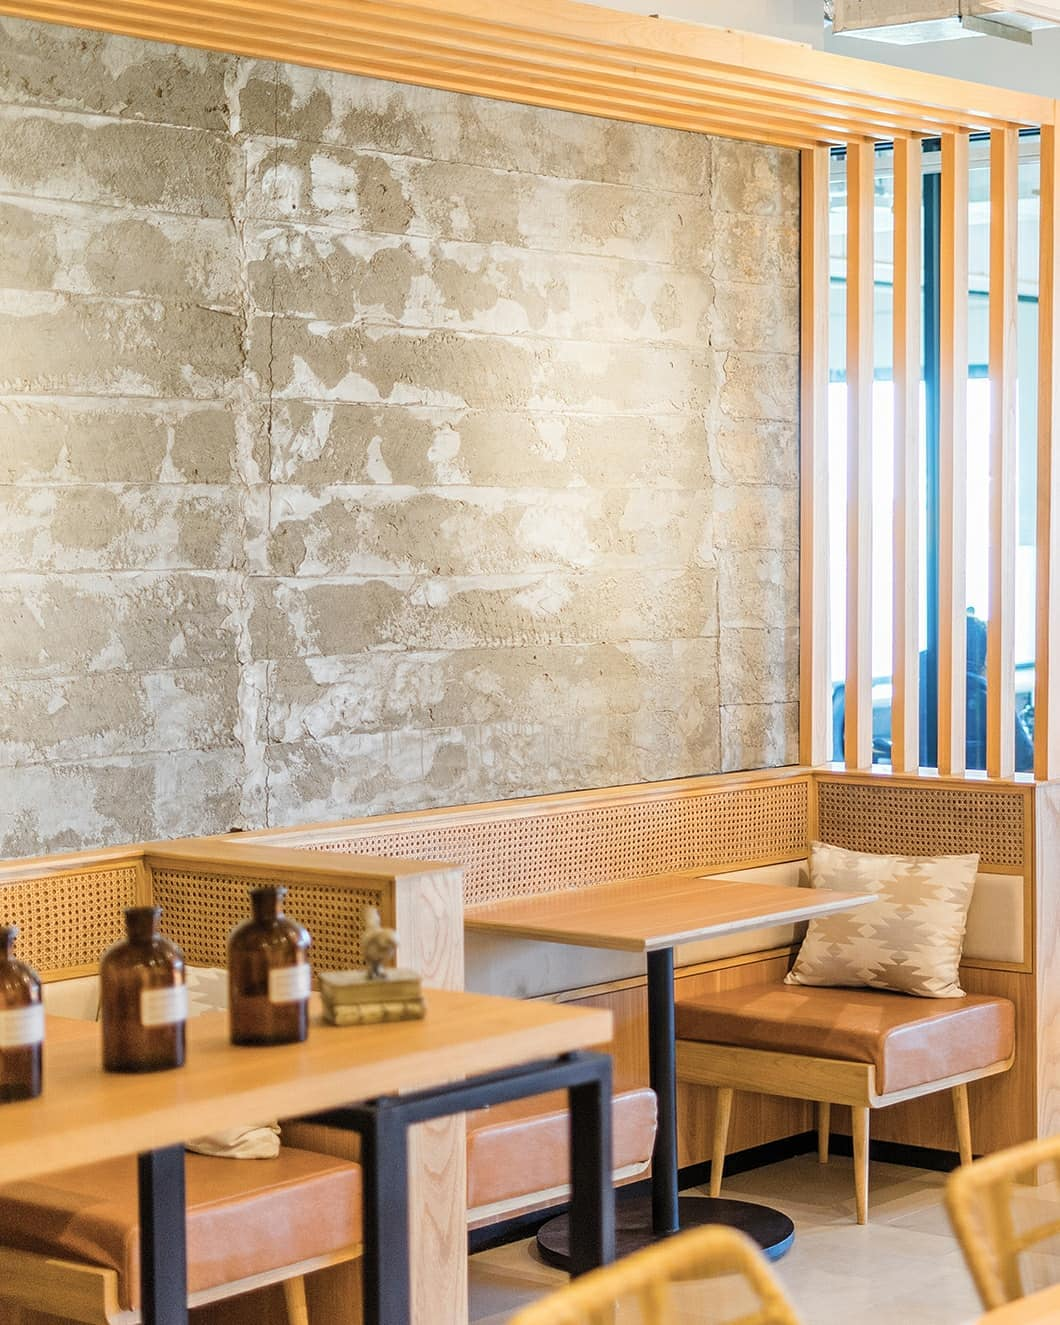 bali coworking spaces - gowork park 23 seats